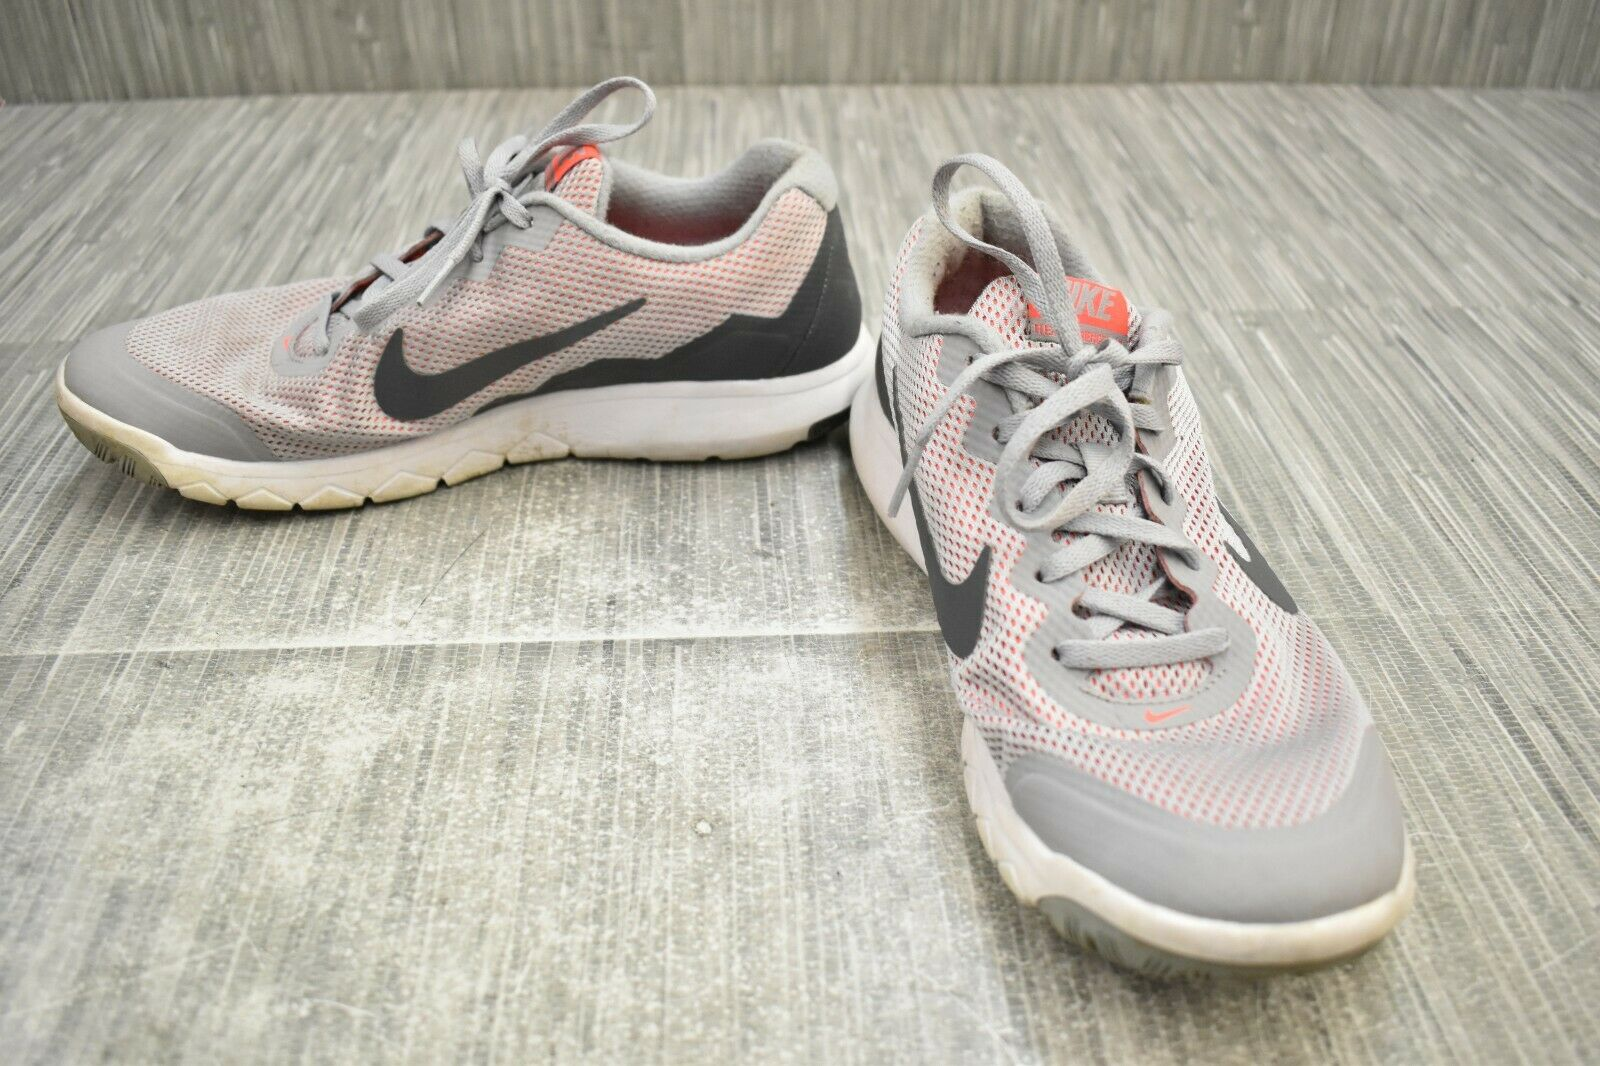 Nike Womens Running Shoes Size 8 M